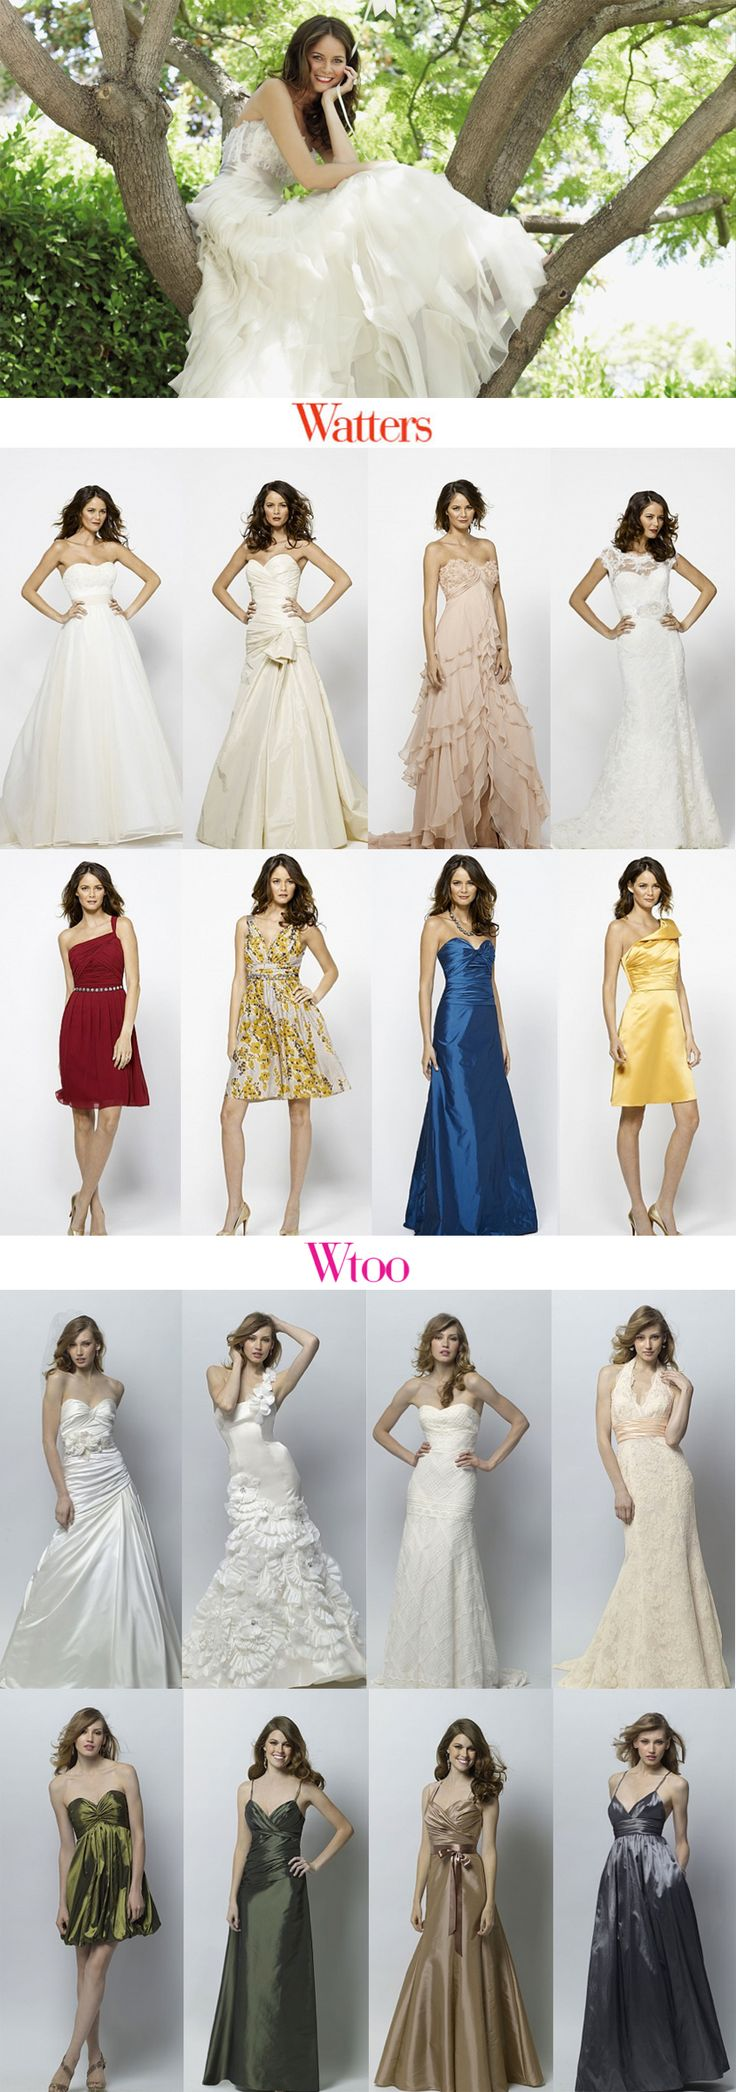 Watters Spring 2012 collection. #wedding #weddingdress #fashion